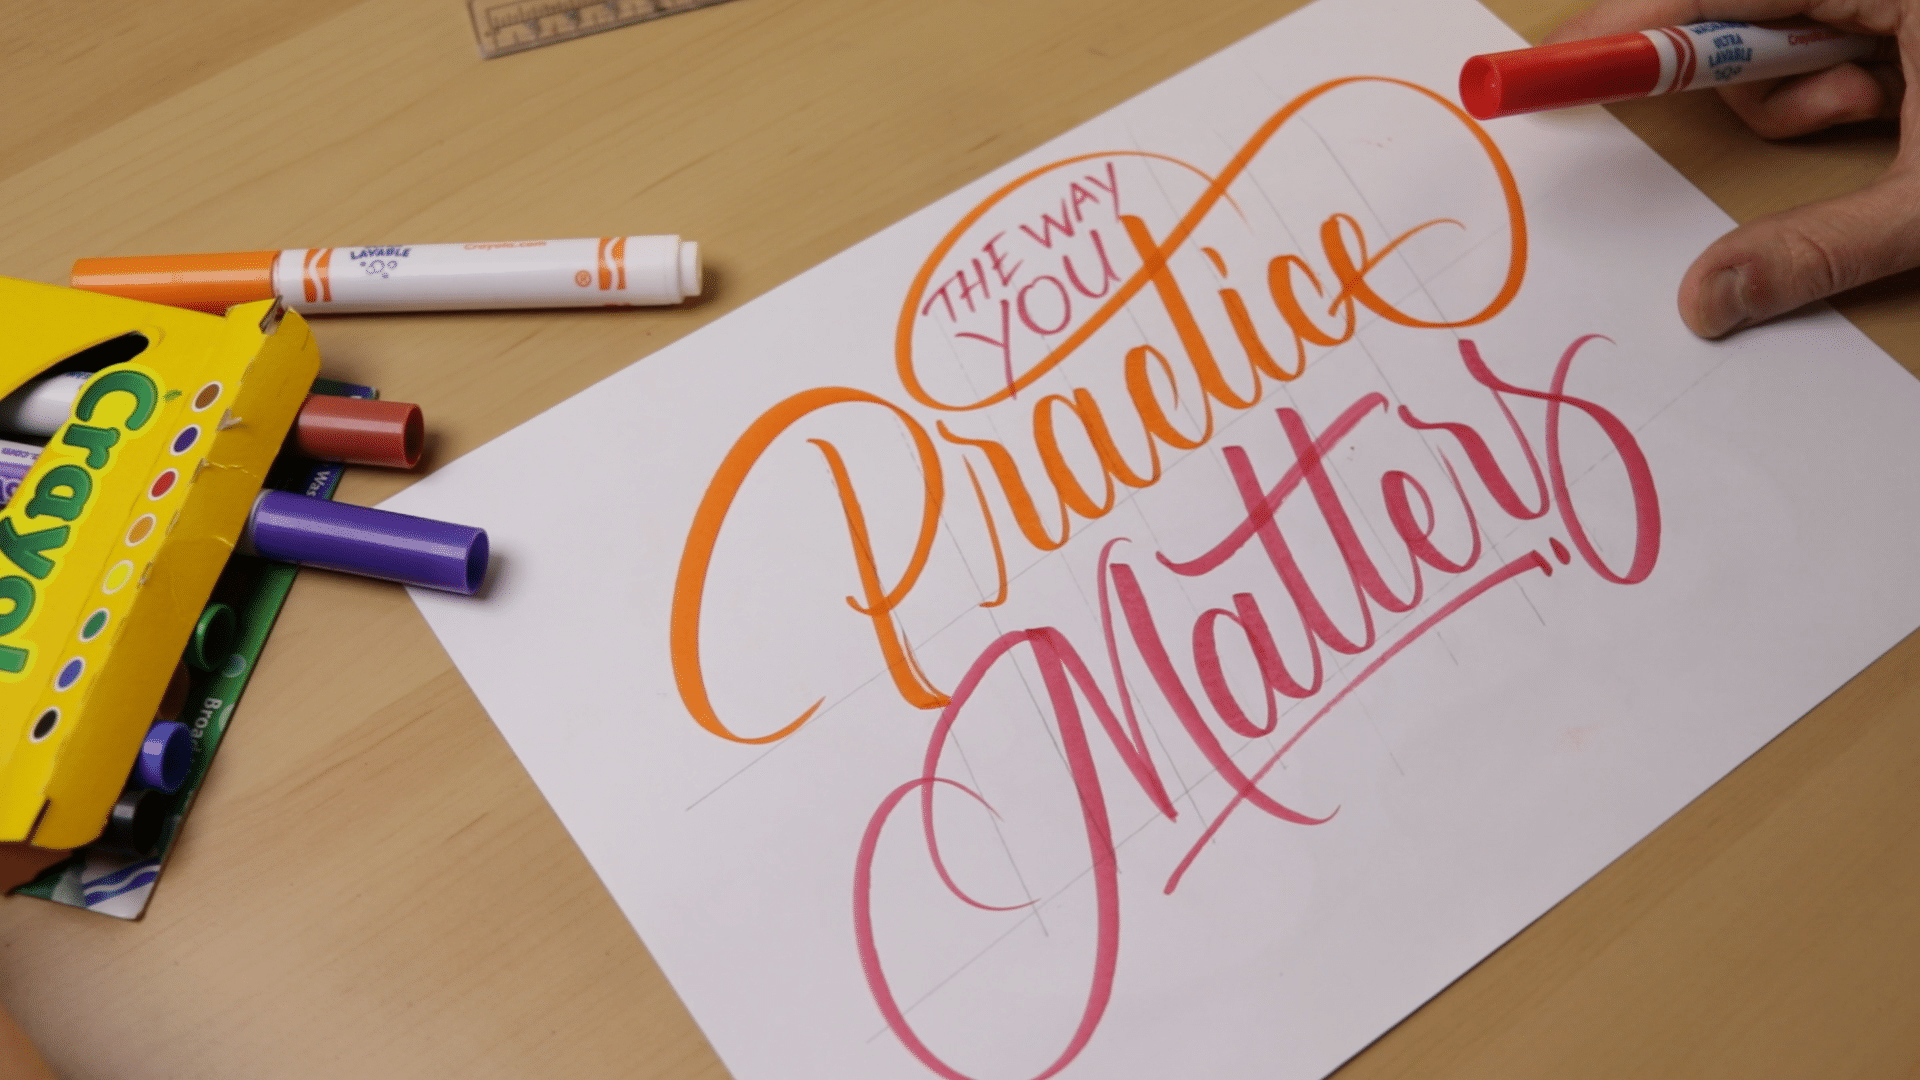 How To Do Calligraphy With Crayola Markers - Lettering Daily